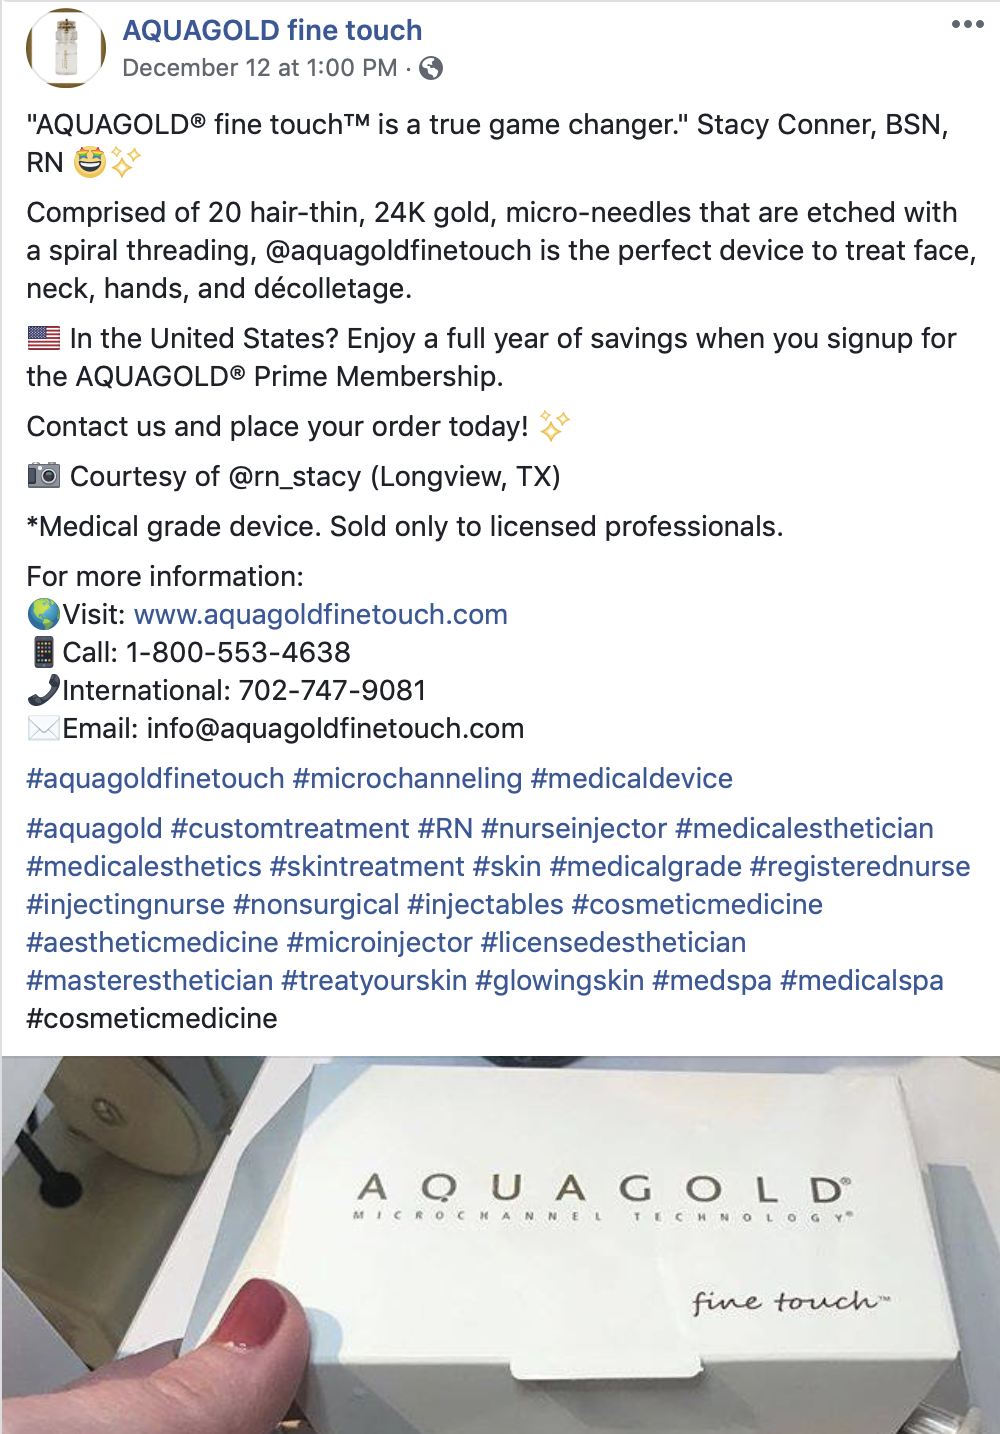 AQUAGOLD Fine Touch - Our client, Stacy Conner, RN, was featured on AQUAGOLD Fine Touch's Facebook page.